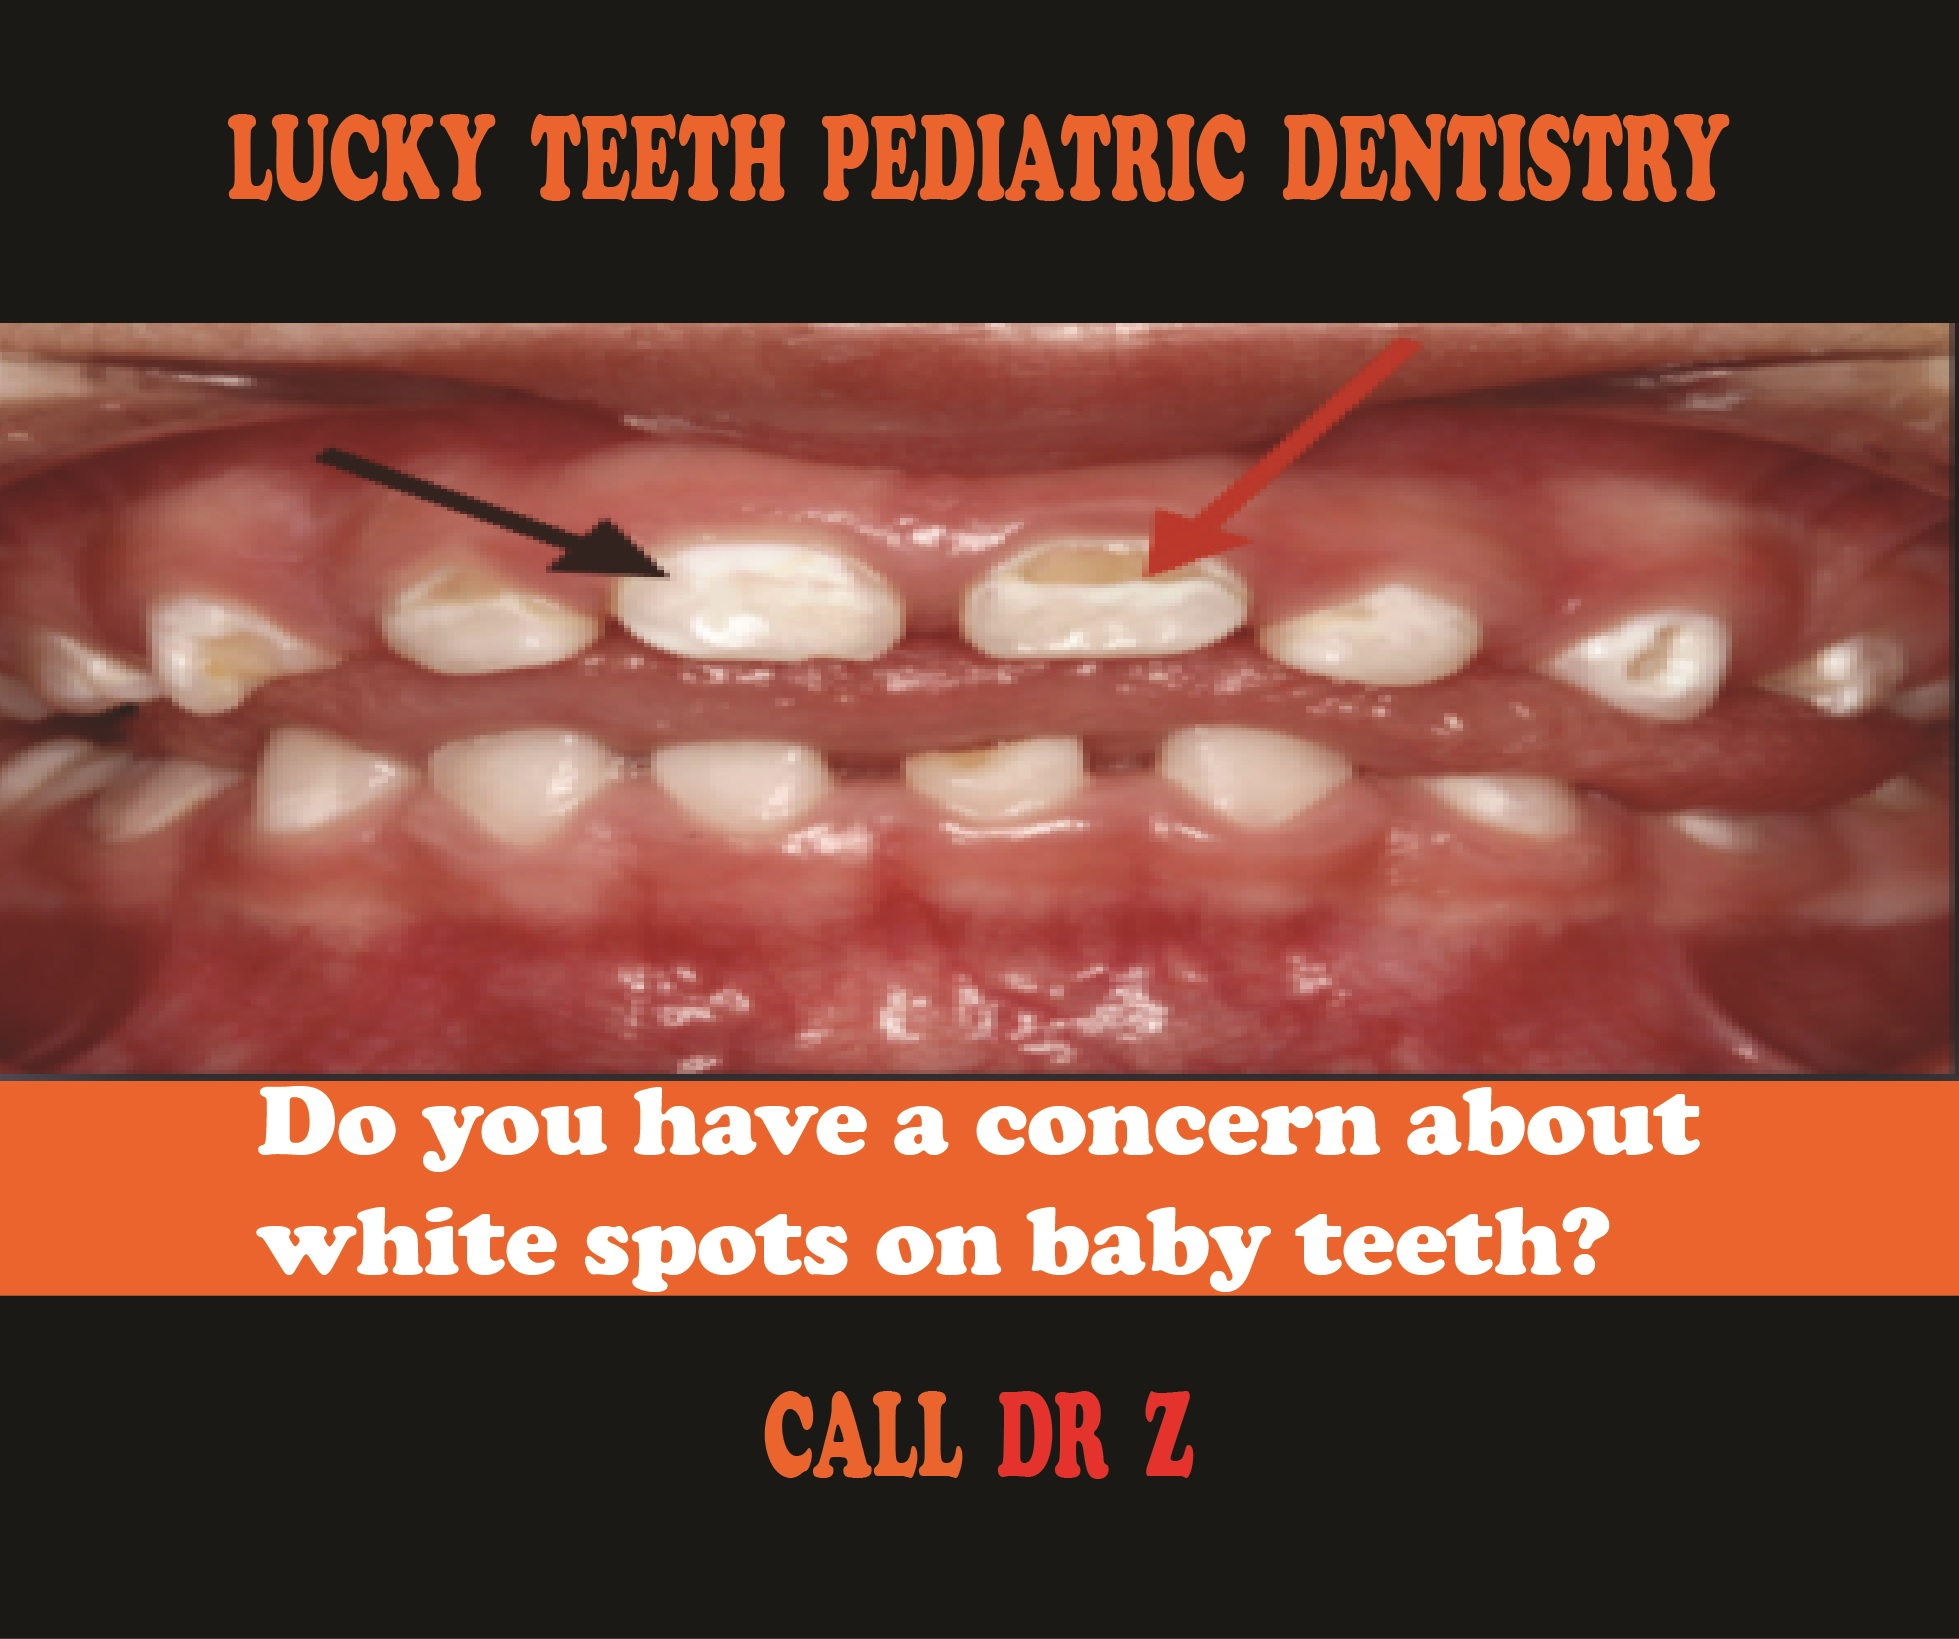 Lucky Teeth Pediatric Dentistry